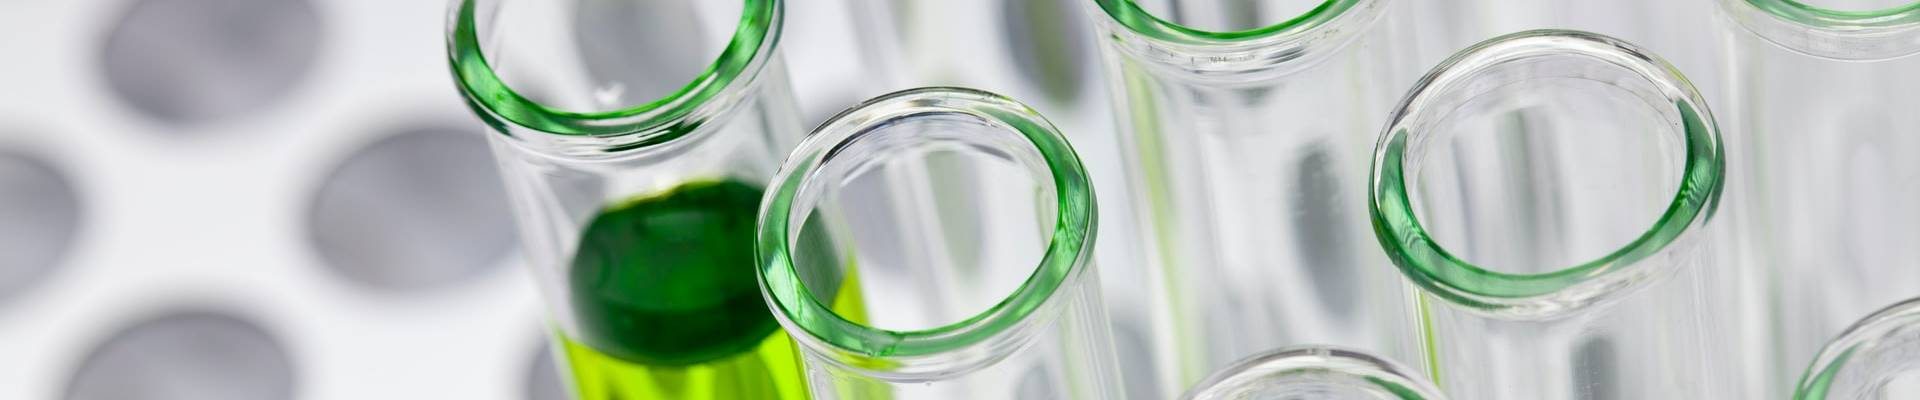 Petri dishes with green fluid inside